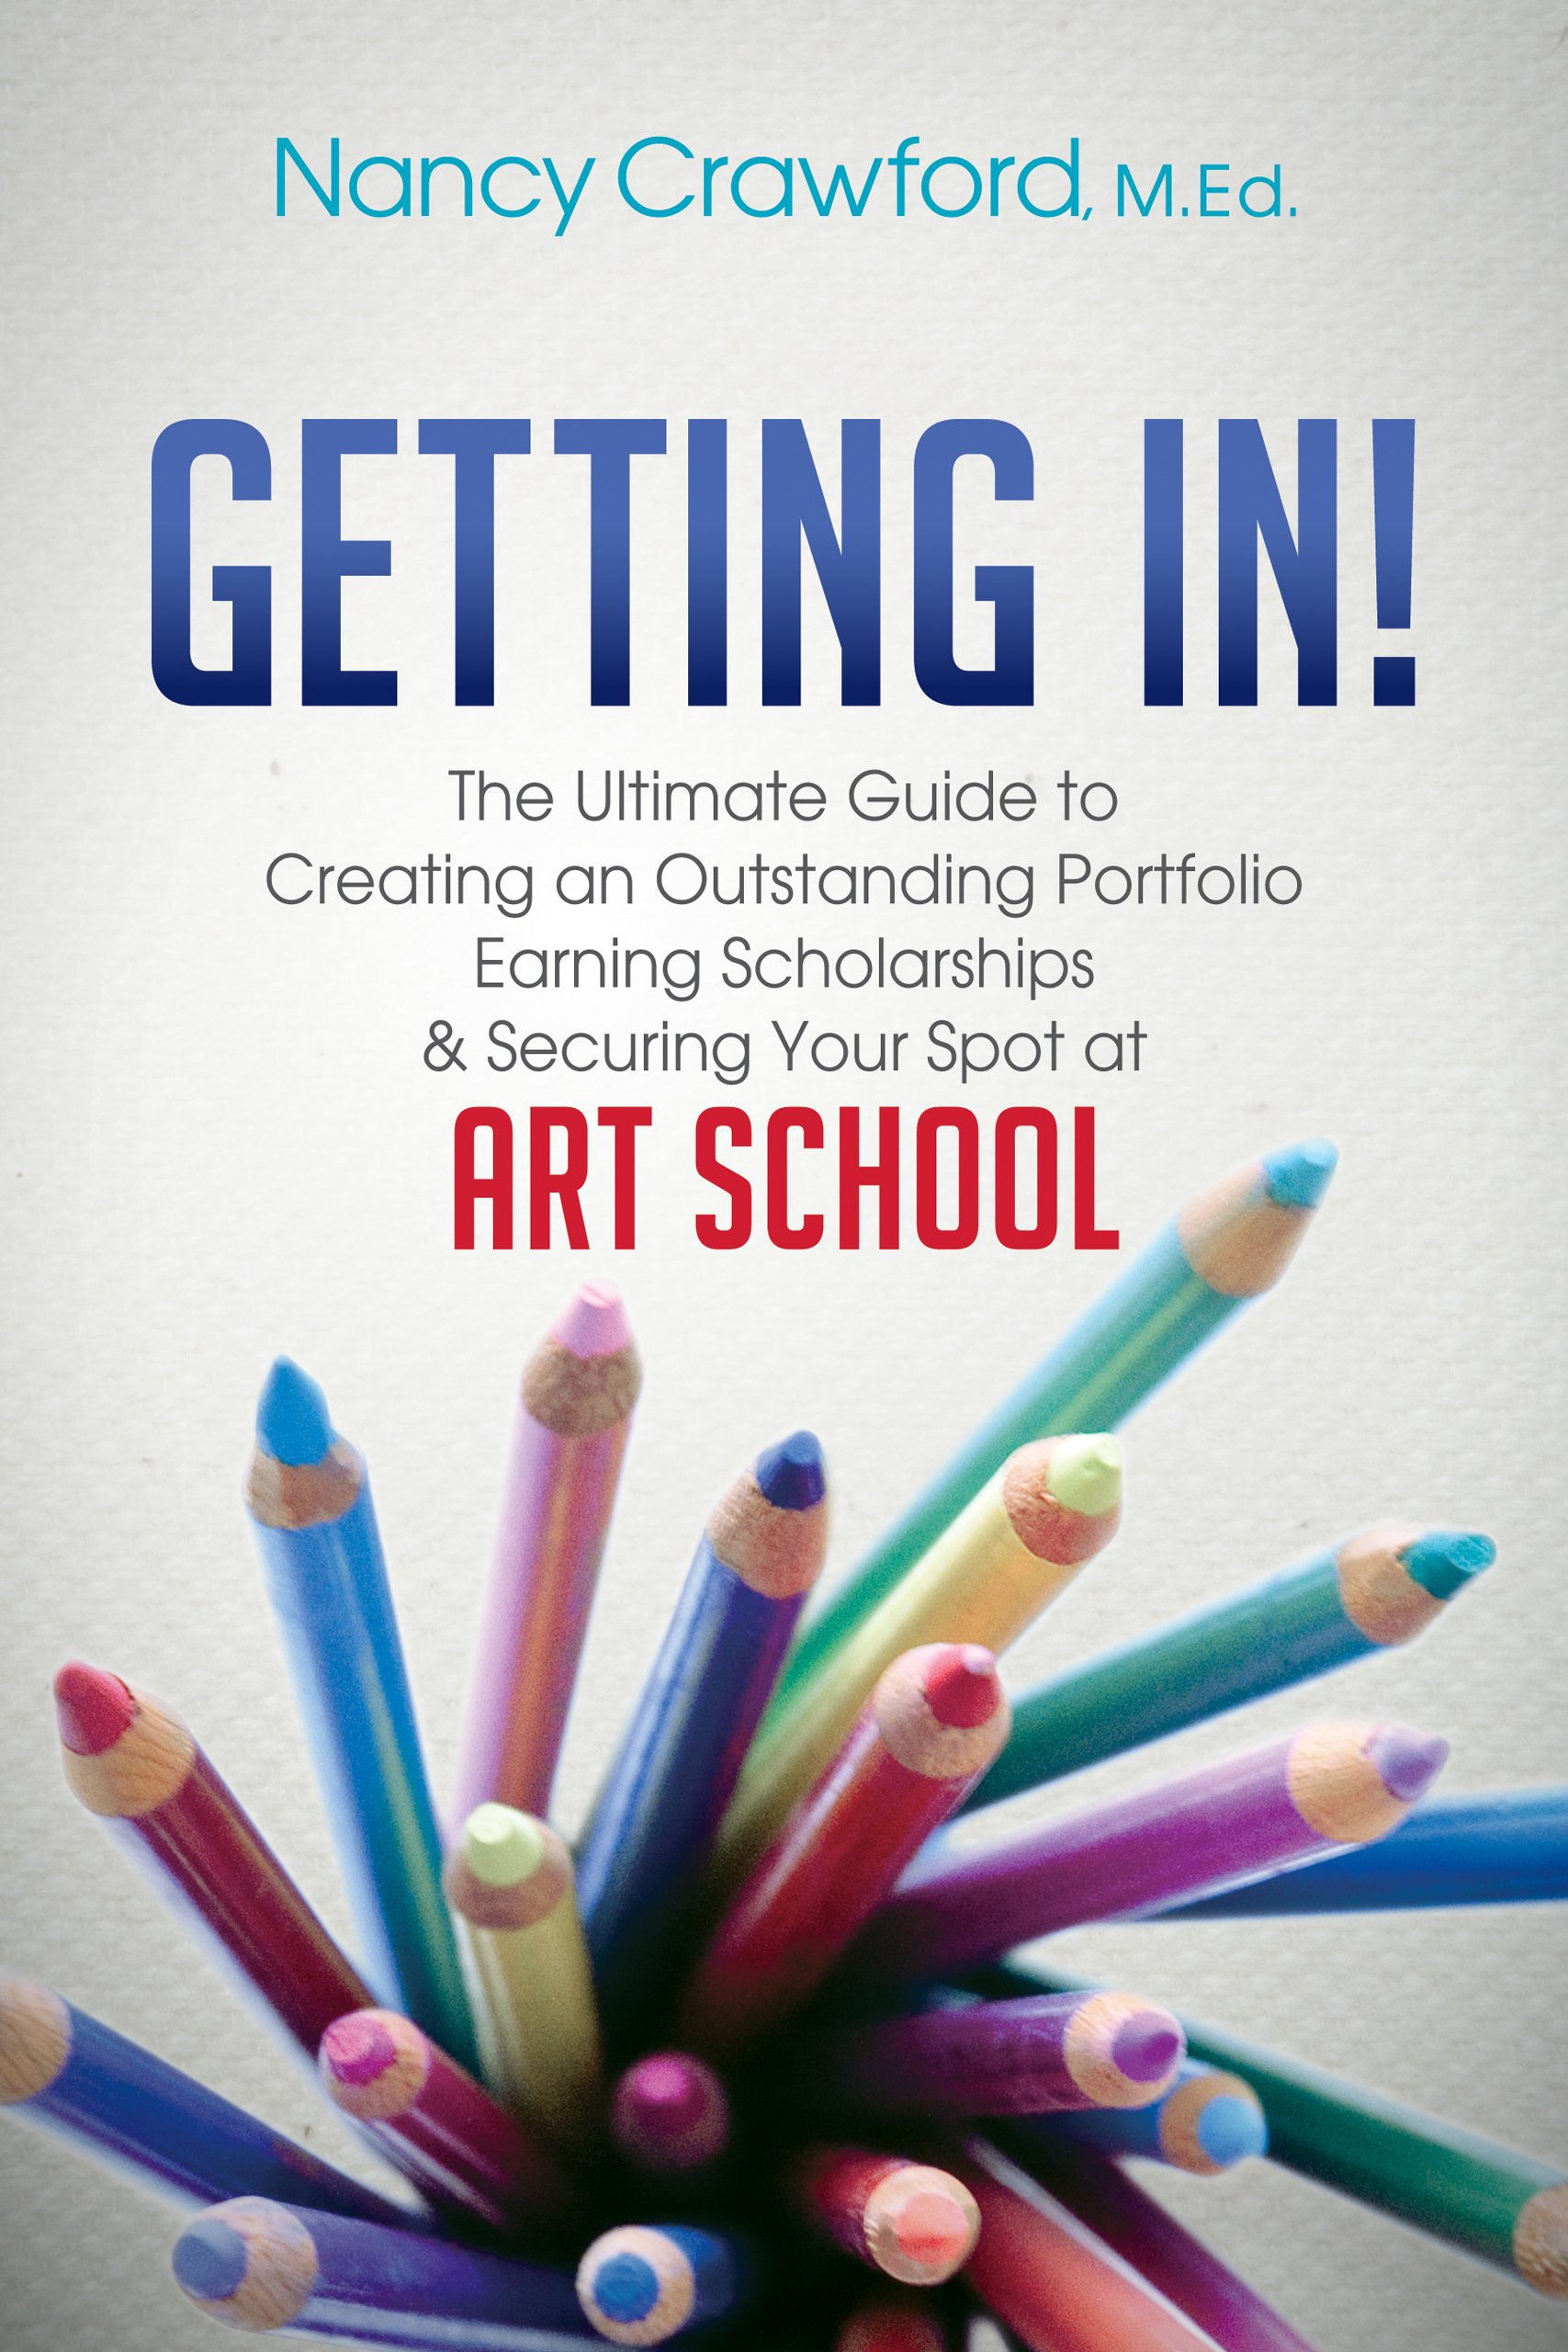 Download Getting In!: The Ultimate Guide to Creating an Outstanding Portfolio, Earning Scholarships and Securing Your Spot at Art School pdf epub